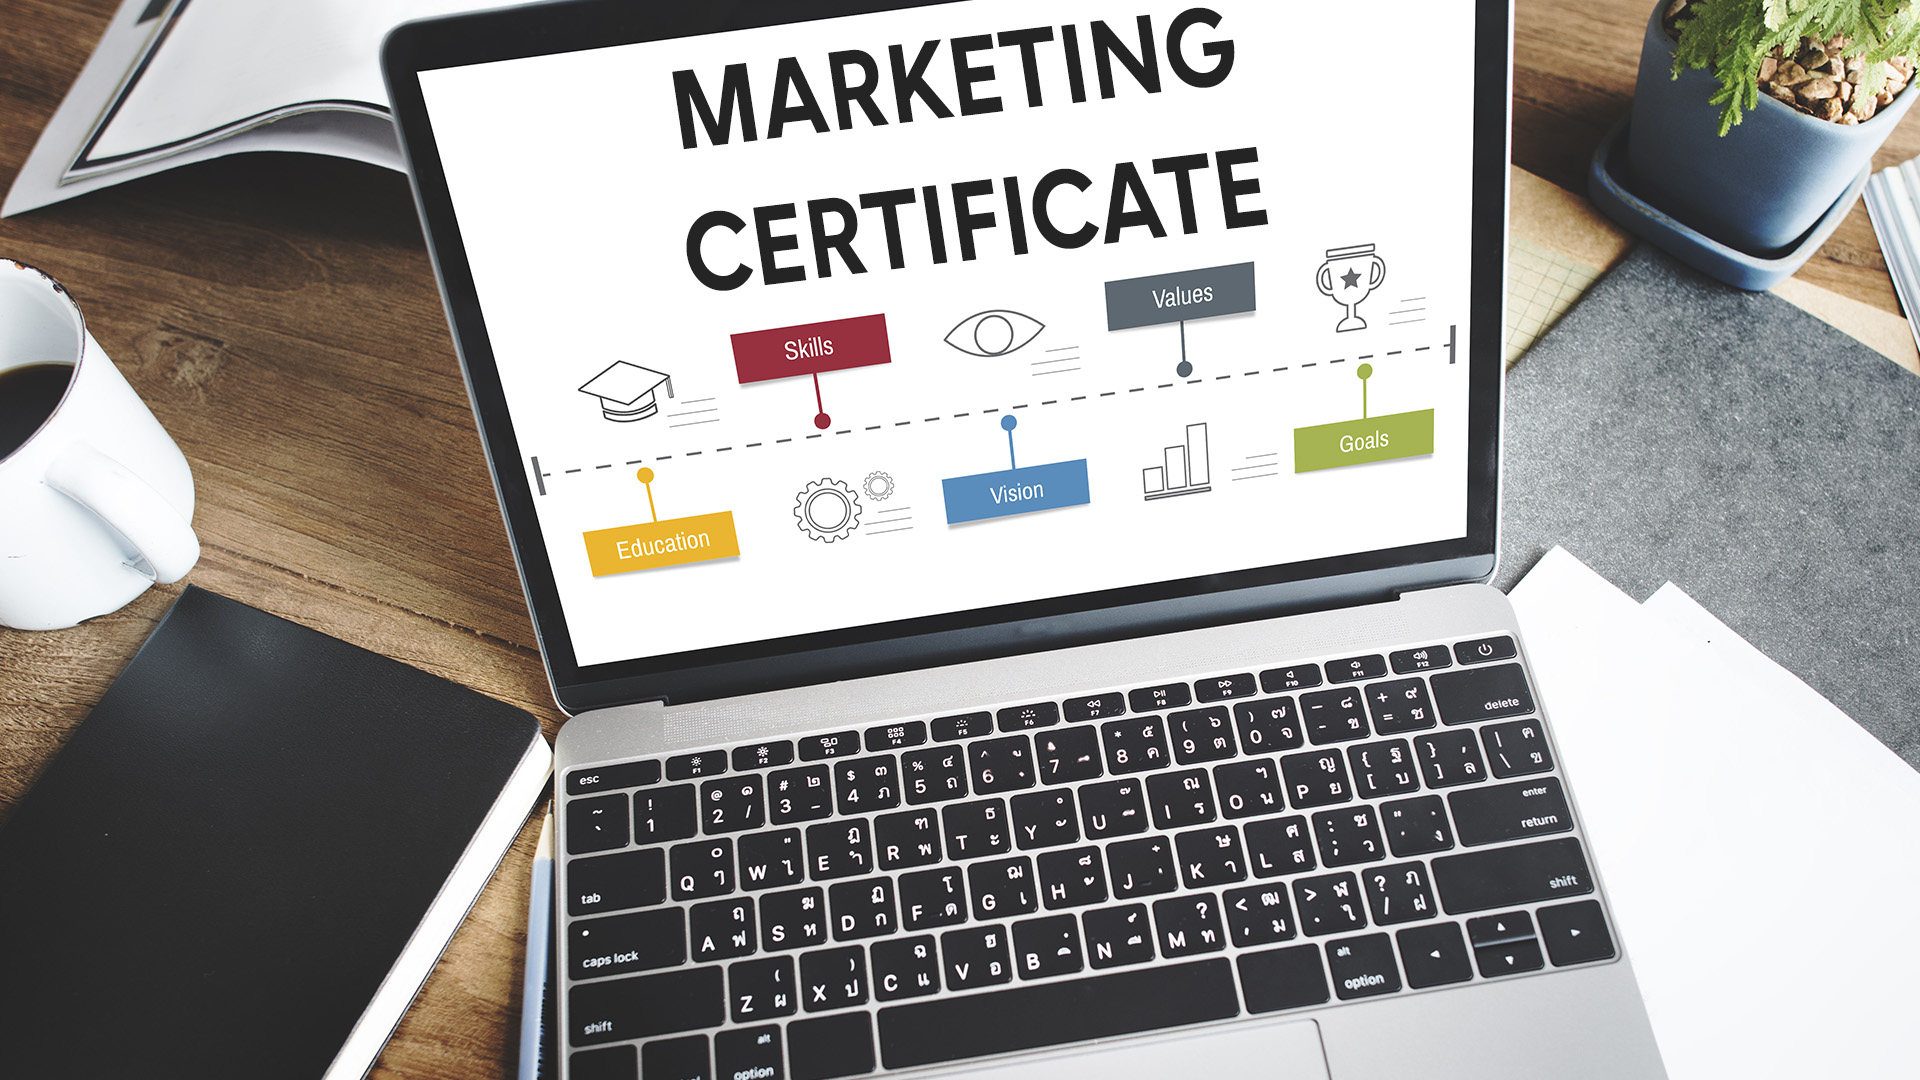 Digital marketing certificates earned online